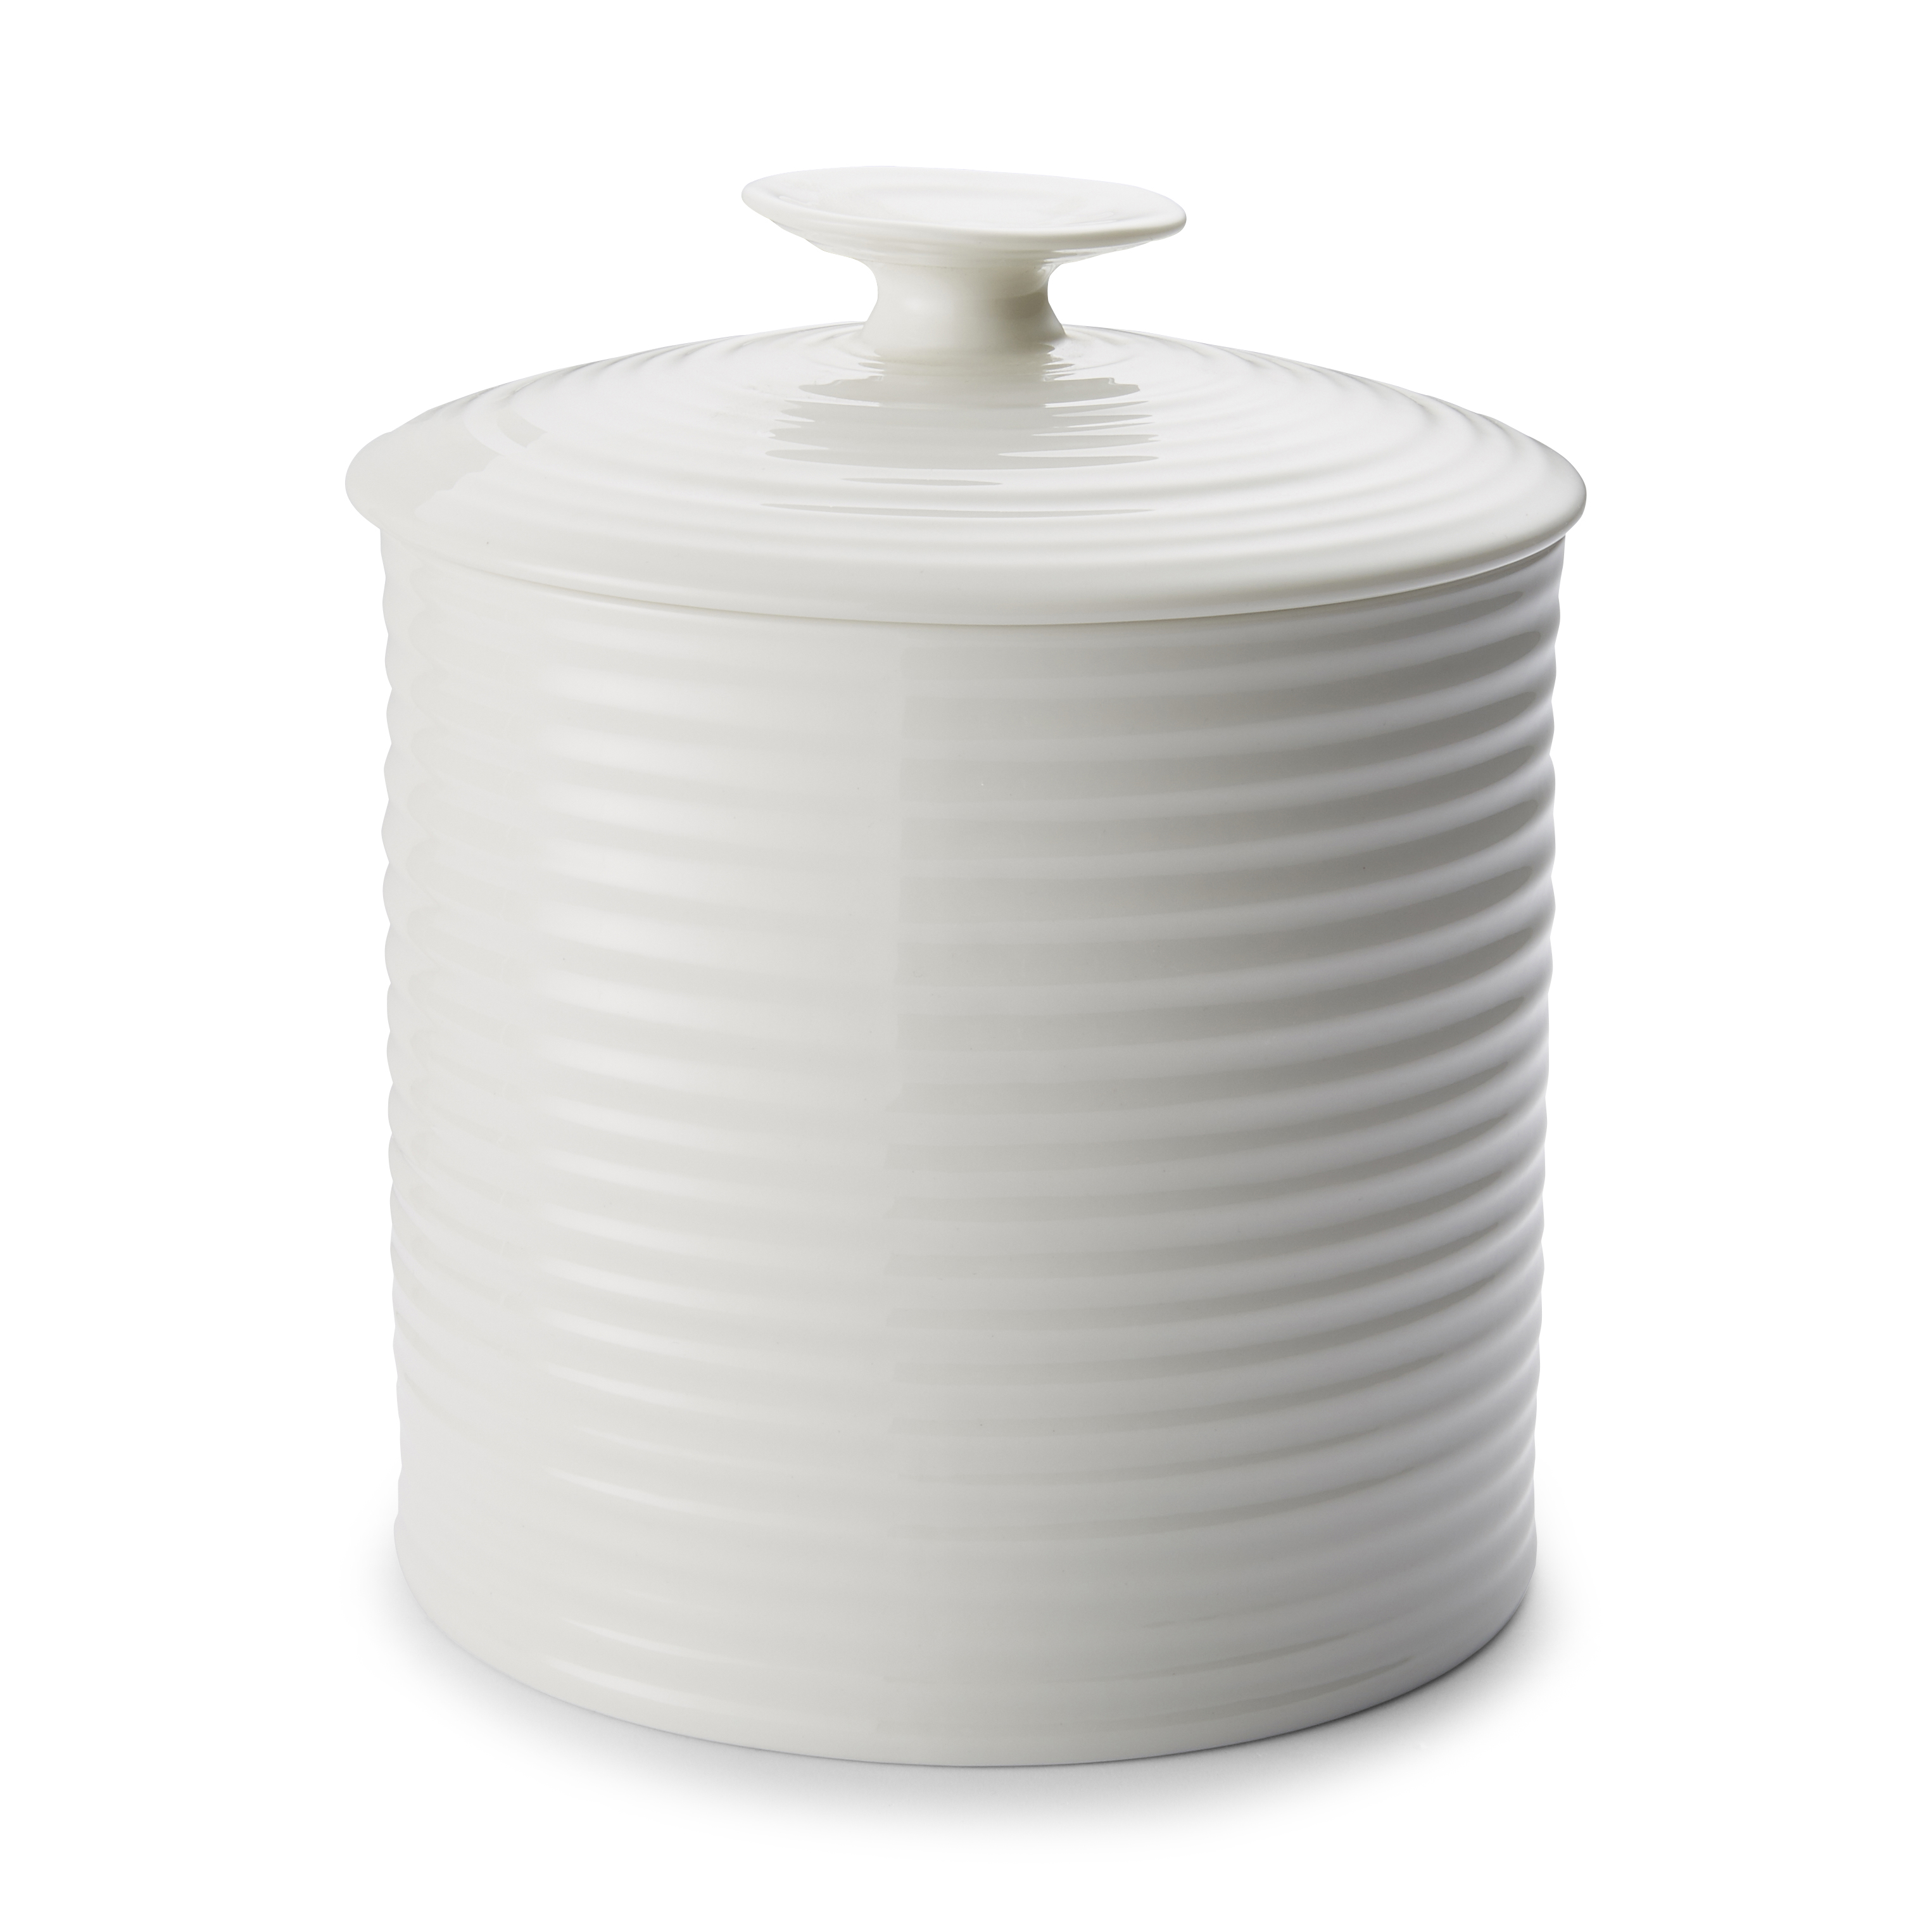 Portmeirion Sophie Conran White Large Canister image number 0